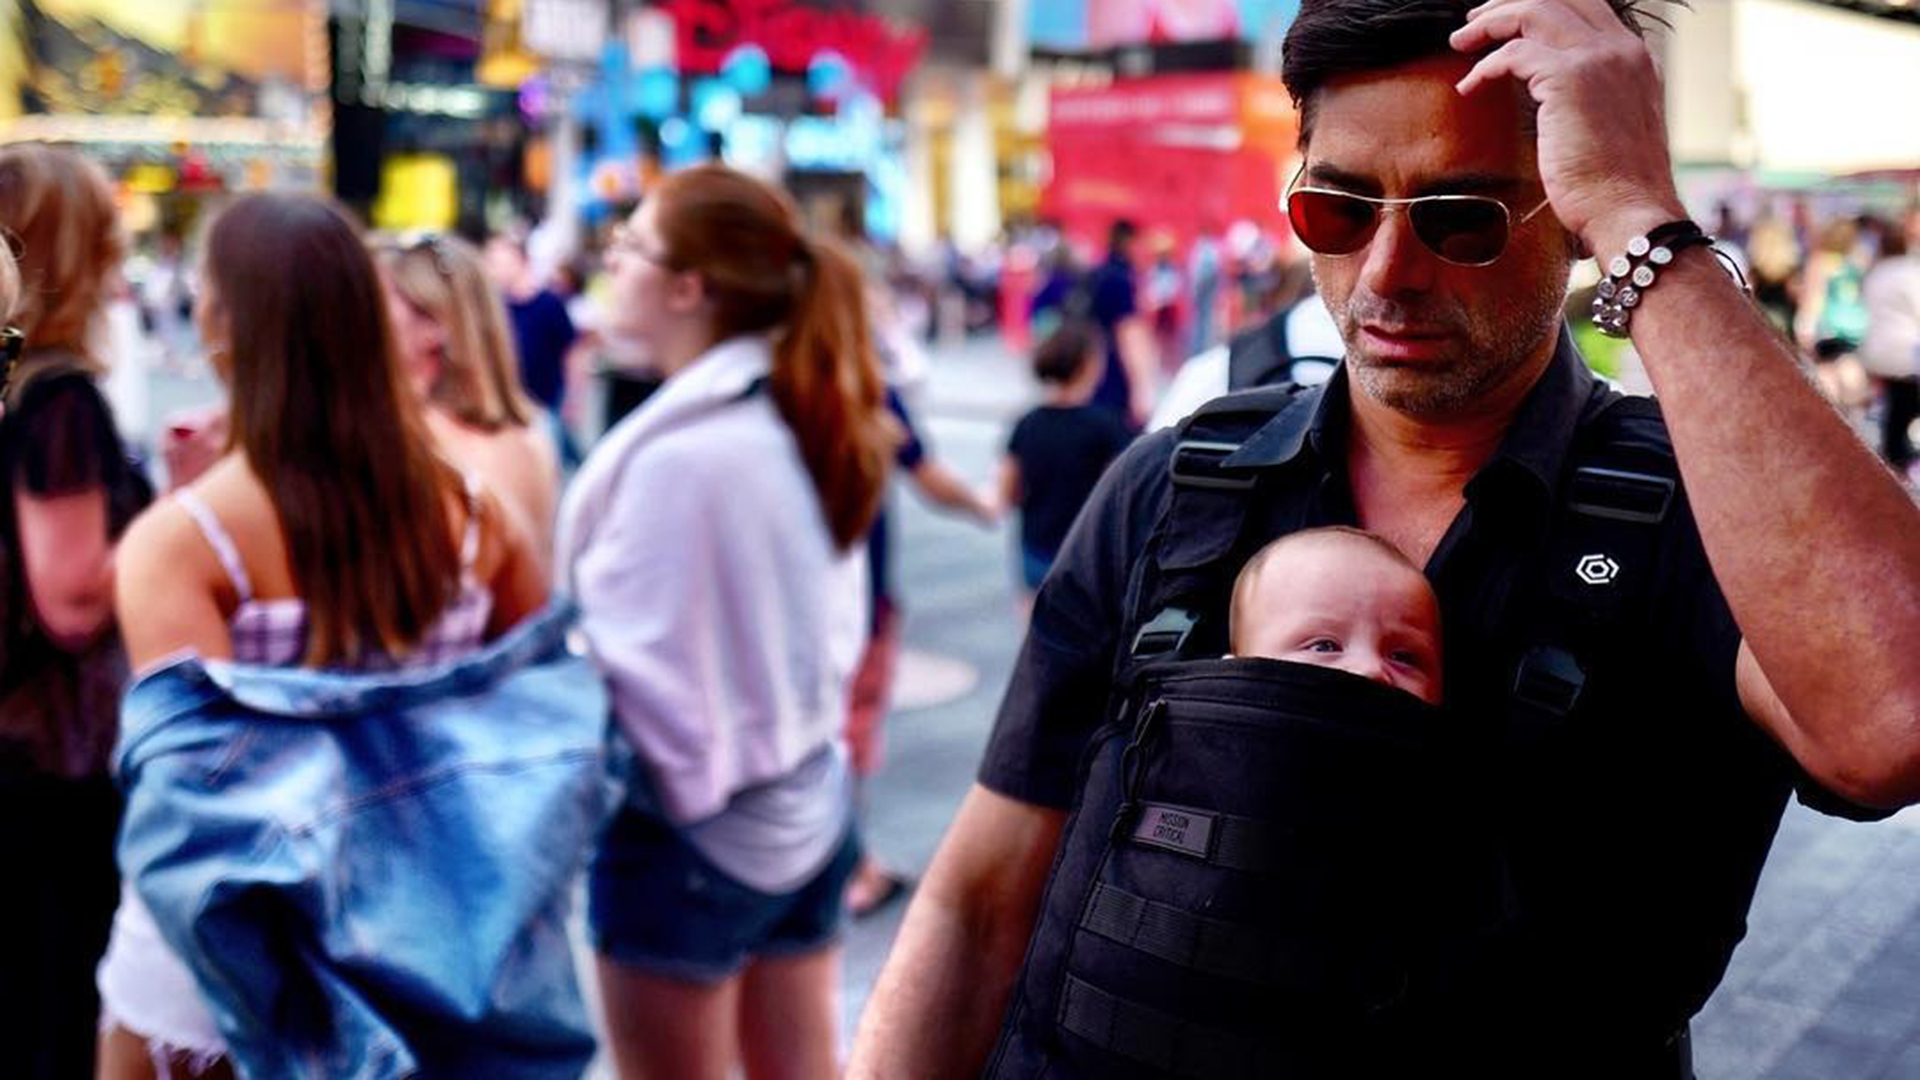 Baby Carriers - Home | Facebook